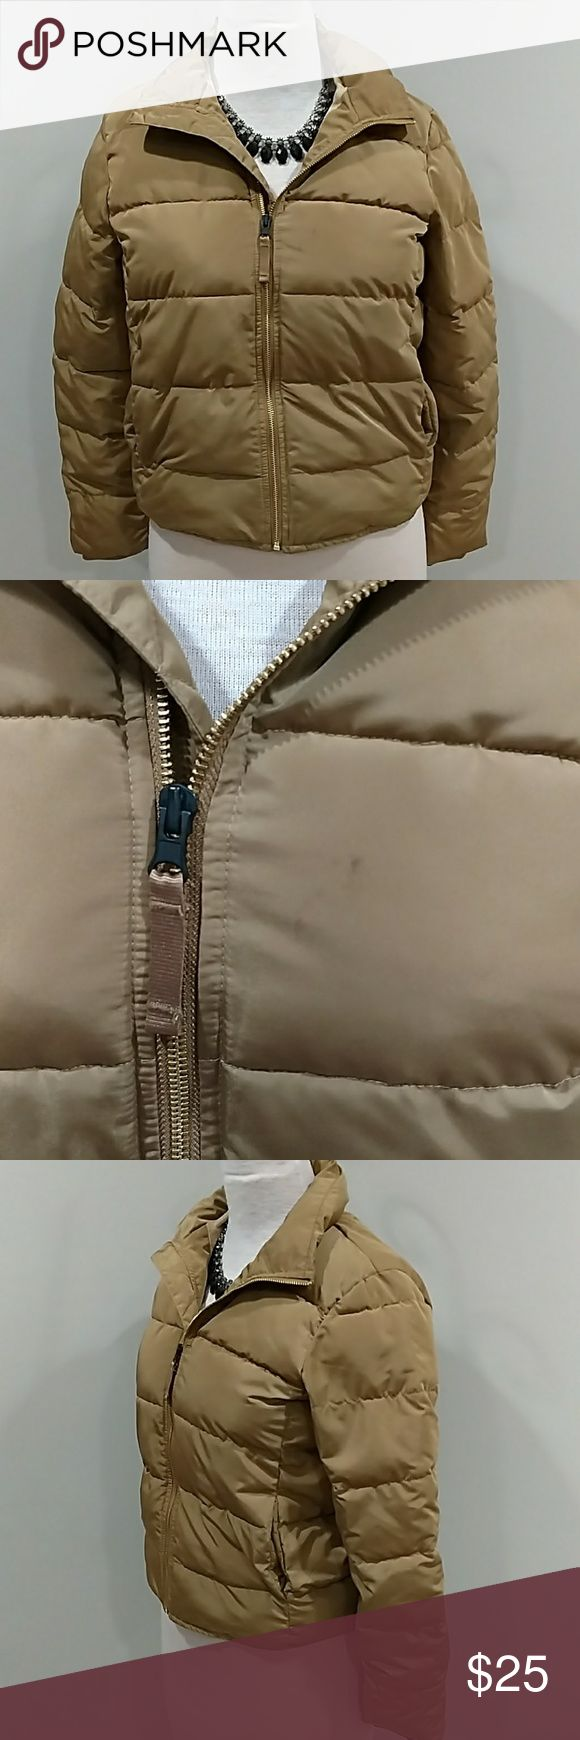 GAP WOMEN'S PUFFER COAT ALTERNATIVE TO DOWN SZ M GREAT GAP PUFFER COAT. GOLD COLOR. EVERYTHING IS GREAT IN THIS COAT EXCEPT 1 SMALL STAIN..... SEE PIC. THIS IS A PRIMALOFT DOWN ALTERNATIVE FILTER COAT. GAP Jackets & Coats Puffers